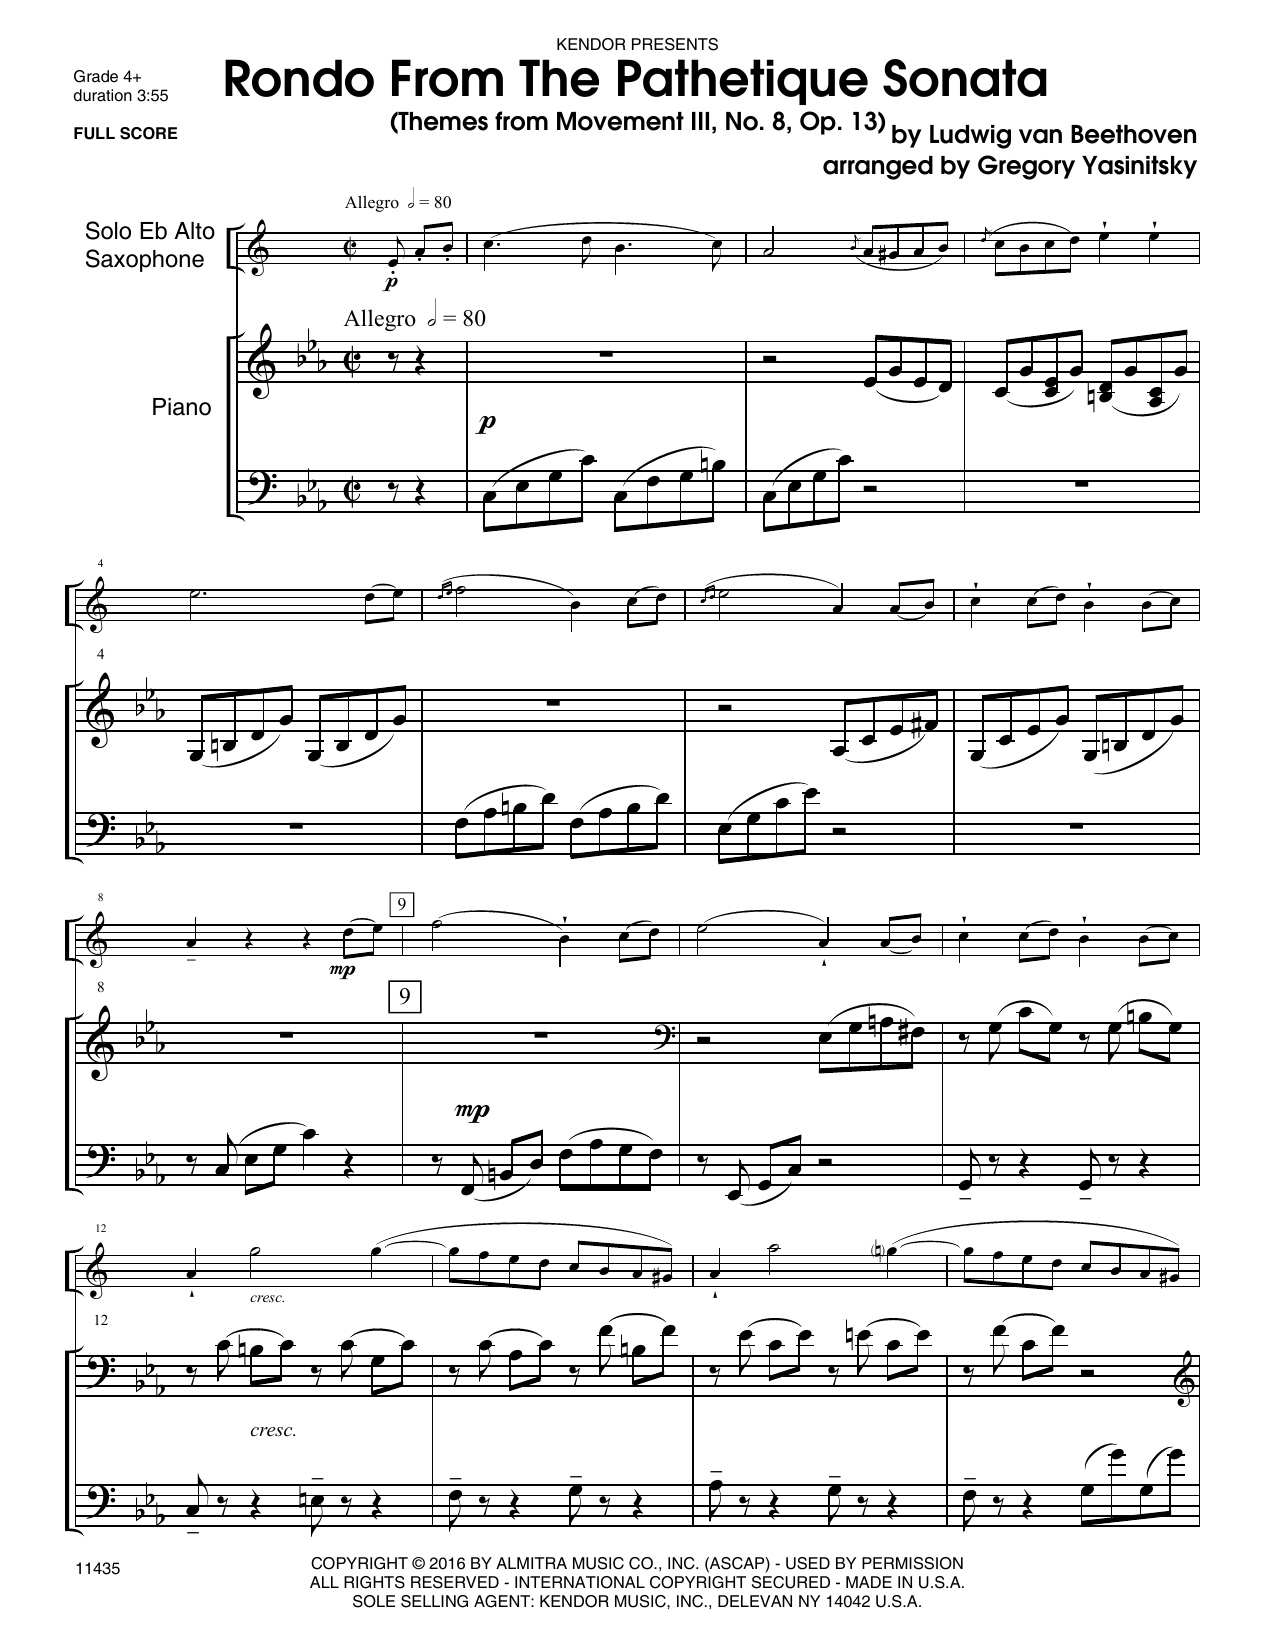 Rondo From The Pathetique Sonata (Themes From Movement III, No. 8, Op. 13) - Piano Sheet Music